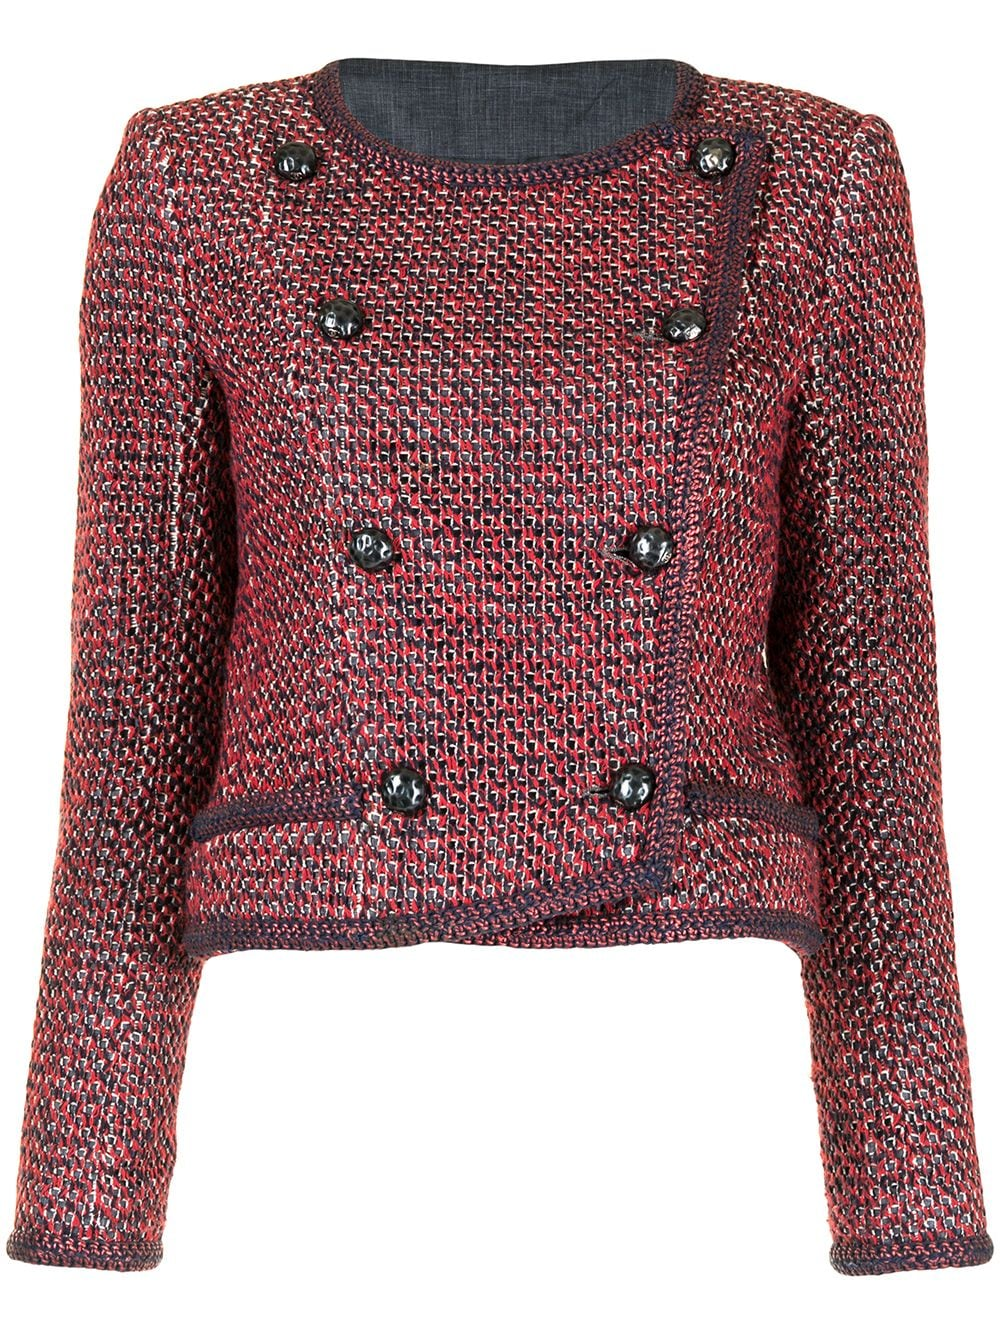 chanel-pre-owned-cropped-double-breasted-tweed-jacket